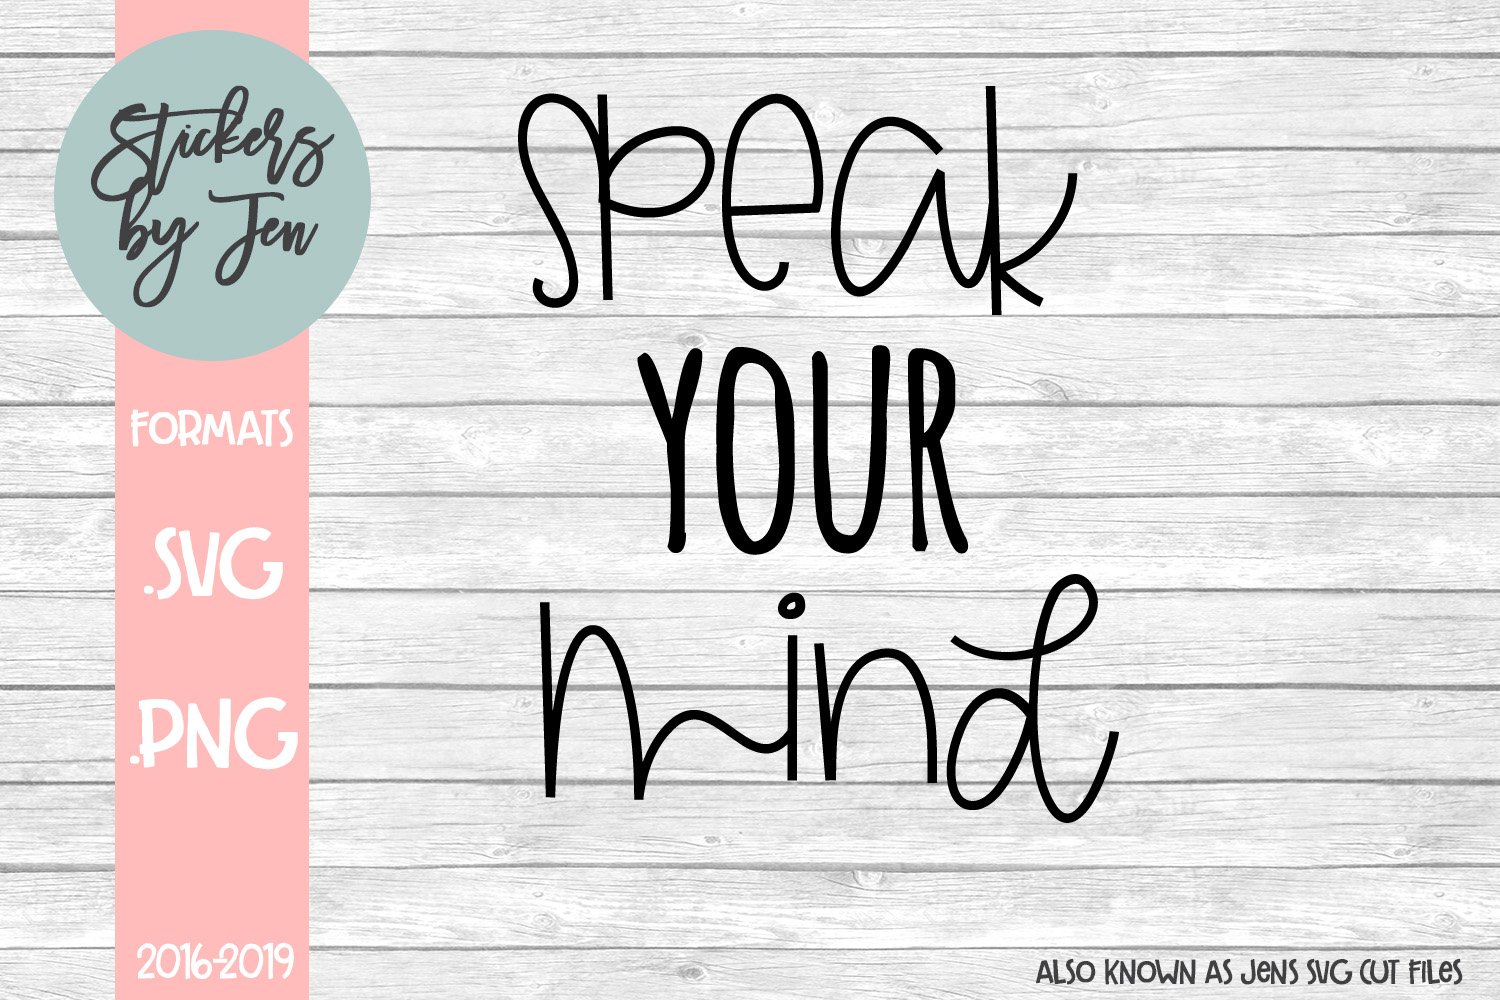 Download Free Speak Your Mind Graphic By Stickers By Jennifer Creative Fabrica for Cricut Explore, Silhouette and other cutting machines.